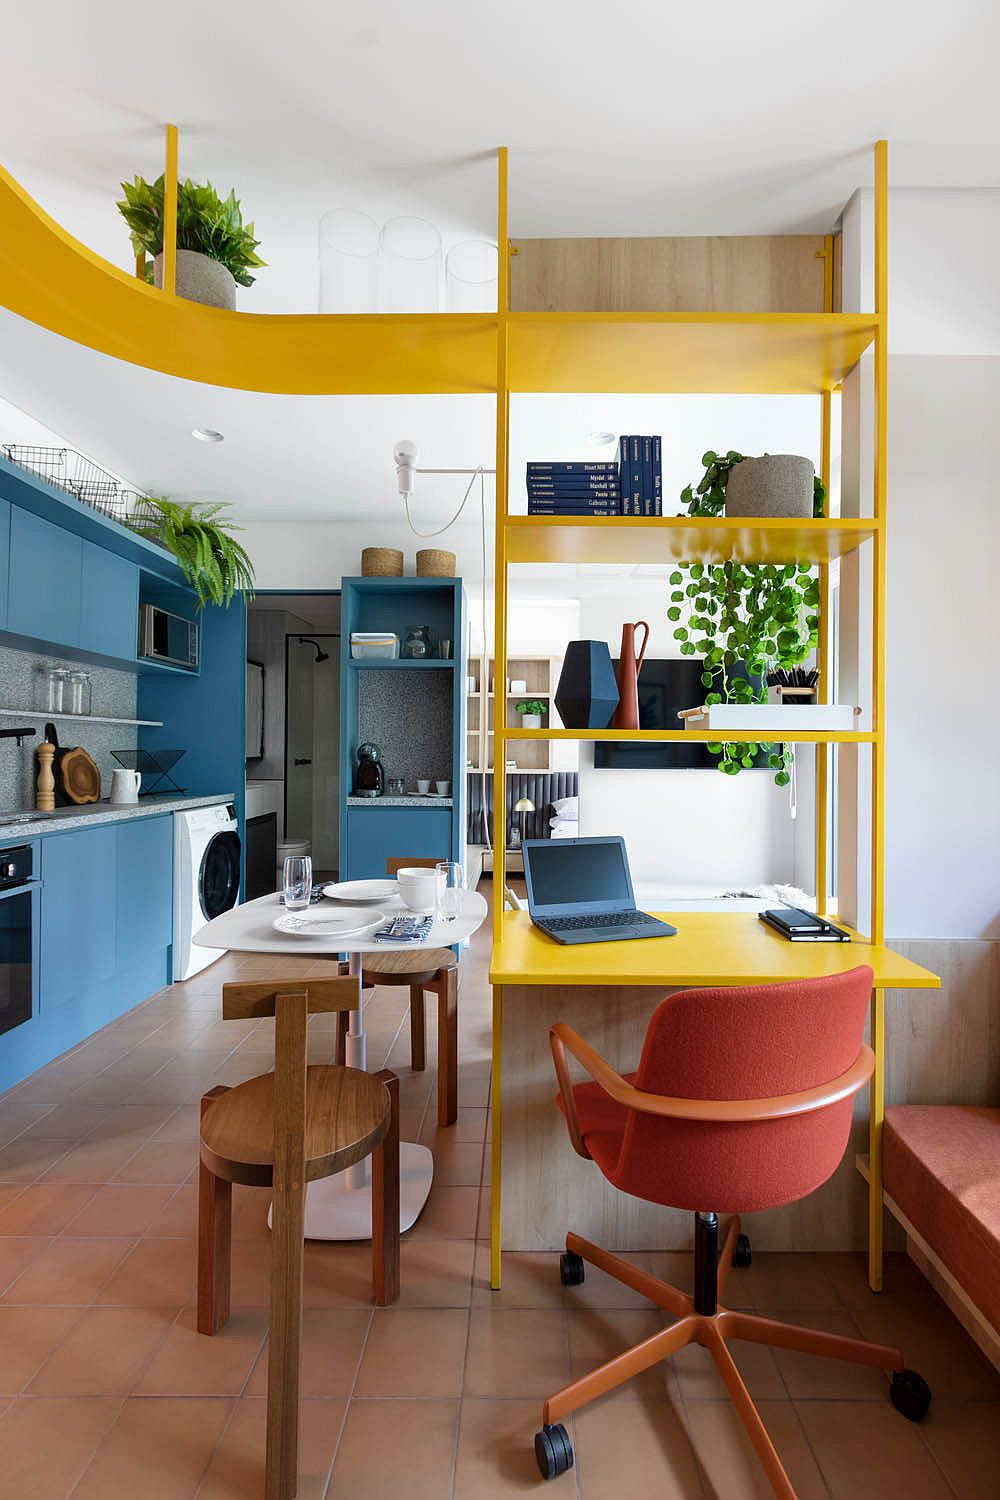 Space-savvy-home-workspace-in-solar-yellow-with-metallic-glitz-64586